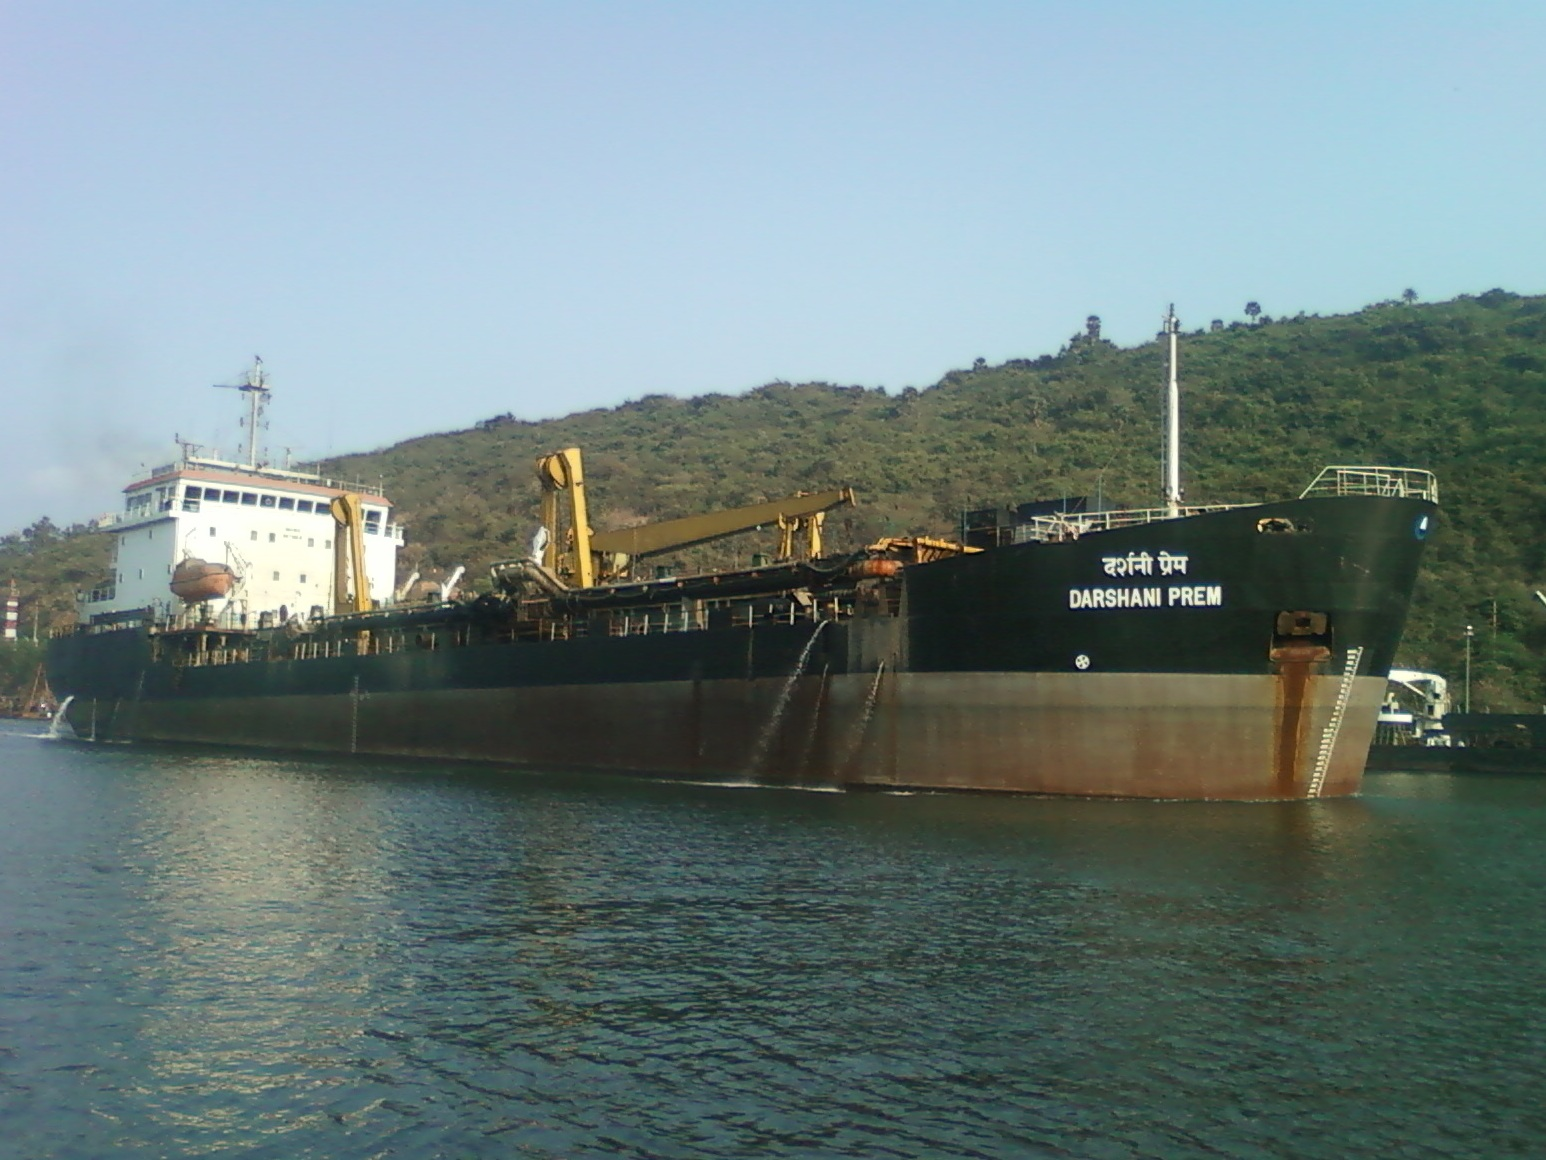 Description Ship Darshani Prem at Vizag seaport Andhra Pradesh.jpg